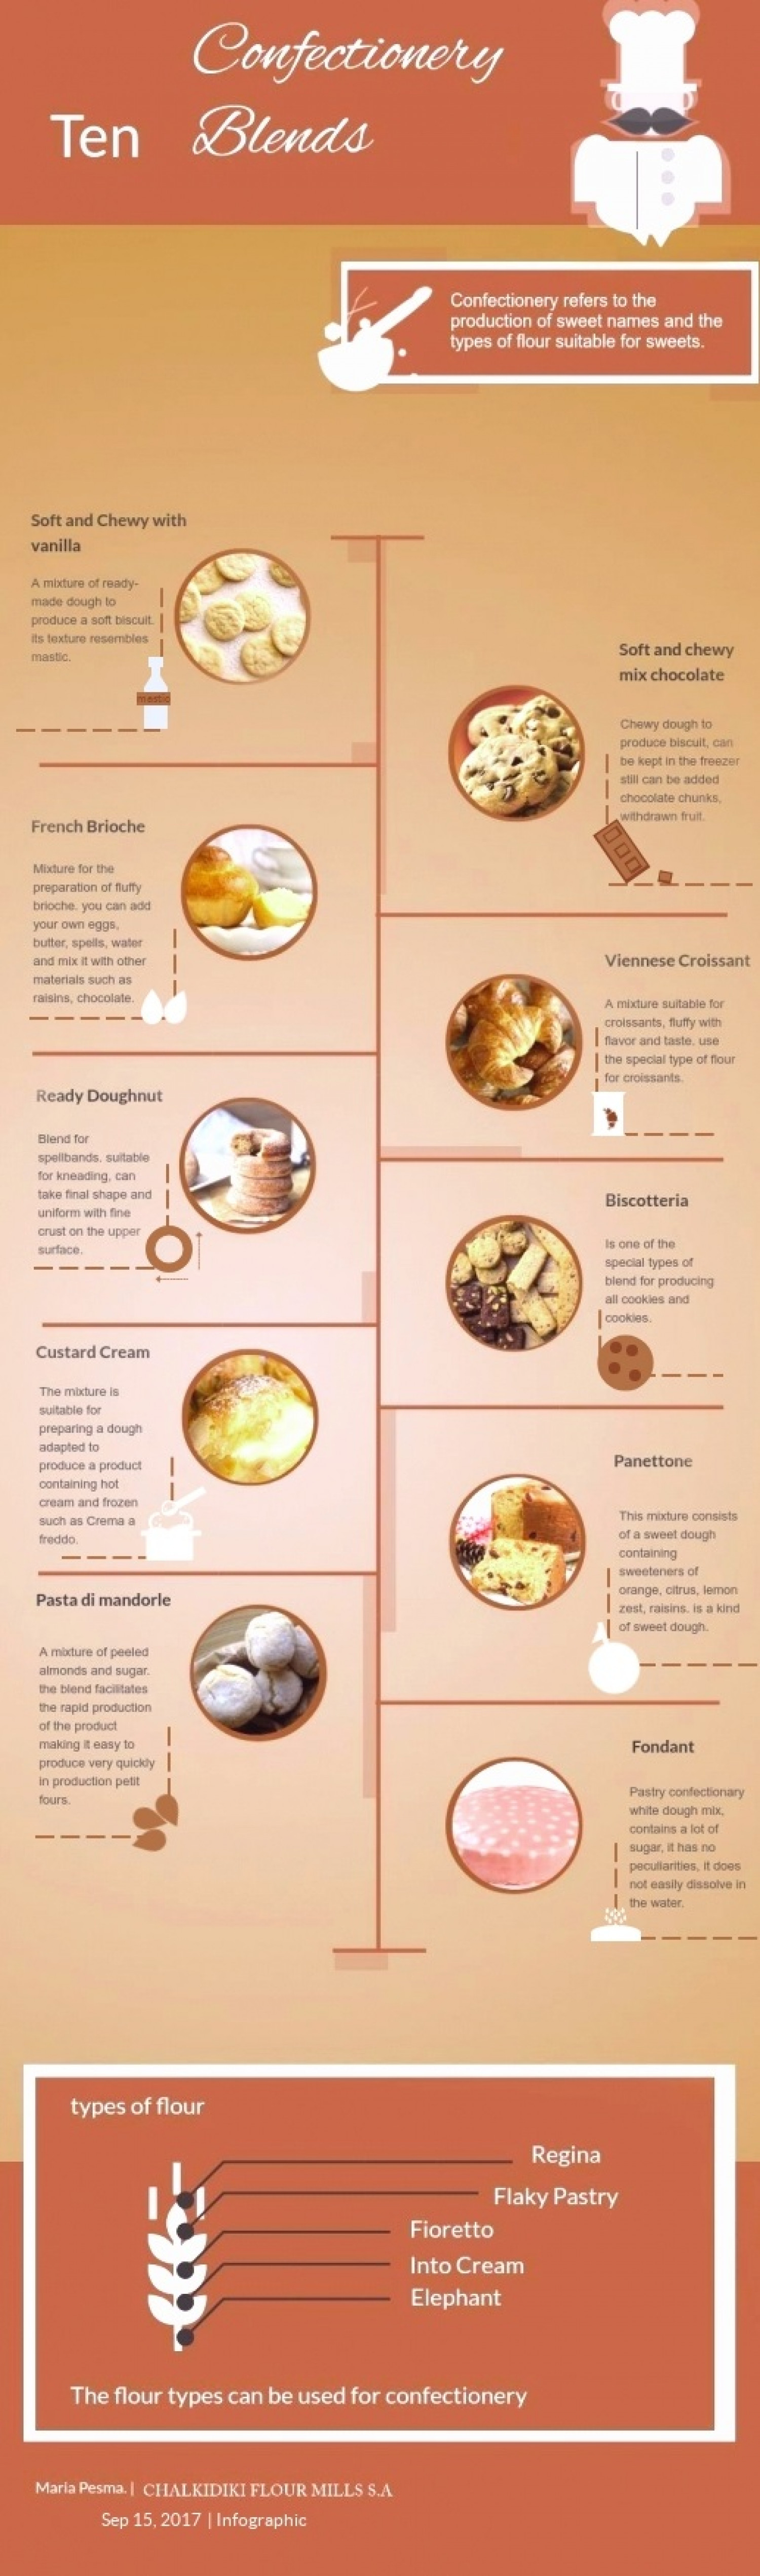 Ten Confectionery Blends Infographic